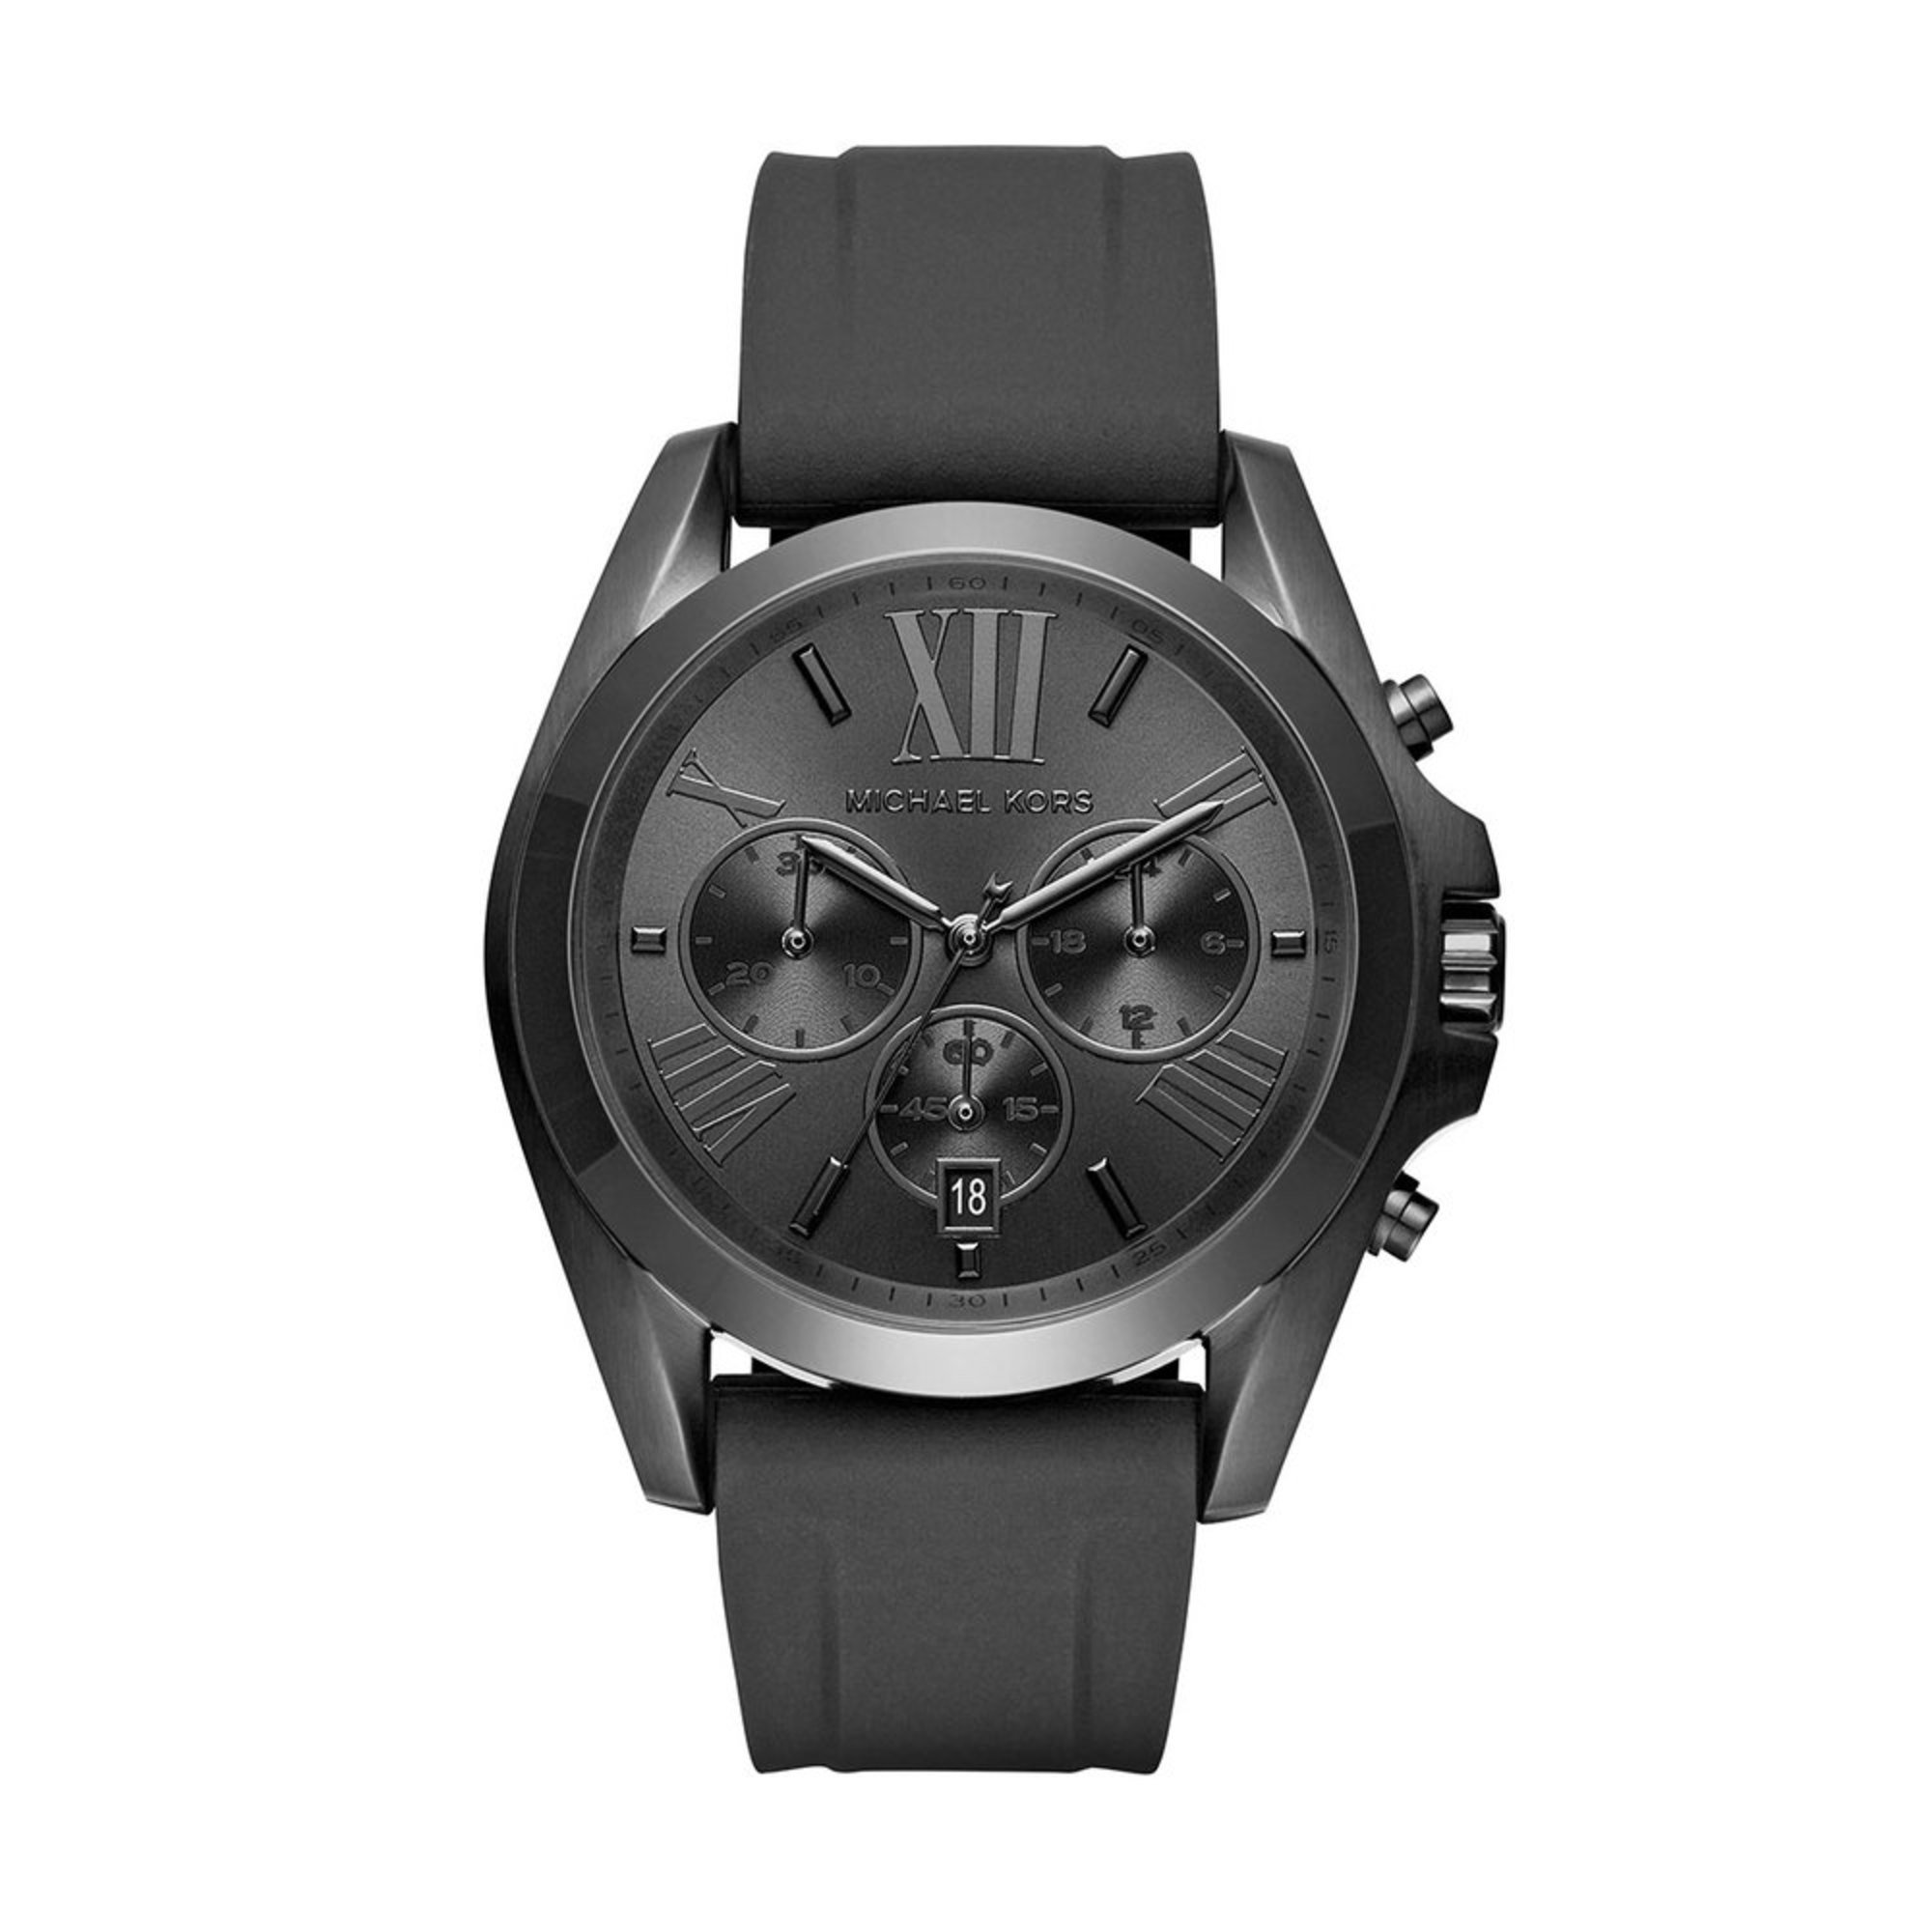 michael kors watches canada online - Official Site. michael kors watches canada online - Official Site, Is your best destination to buy Michael Kors watches: Rose Gold, Runway, Parker, Bradshaw, and many more! Free shipping available in Canada.